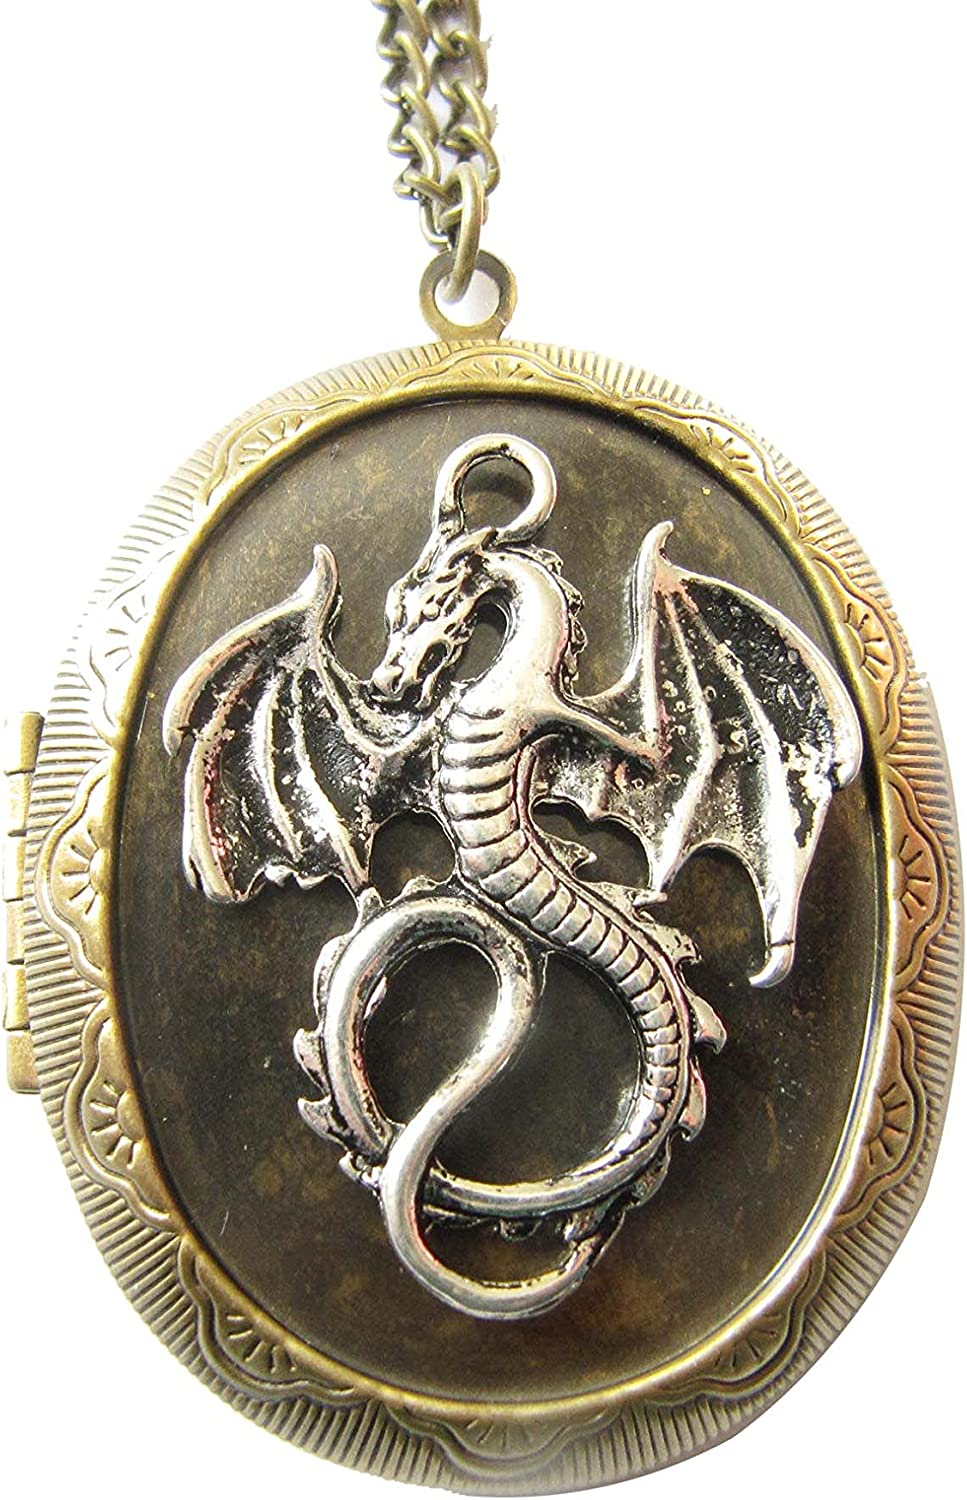 Antique Dragon Popular product Locket New item Necklace Gift-Vintage Jewelry Style Oval